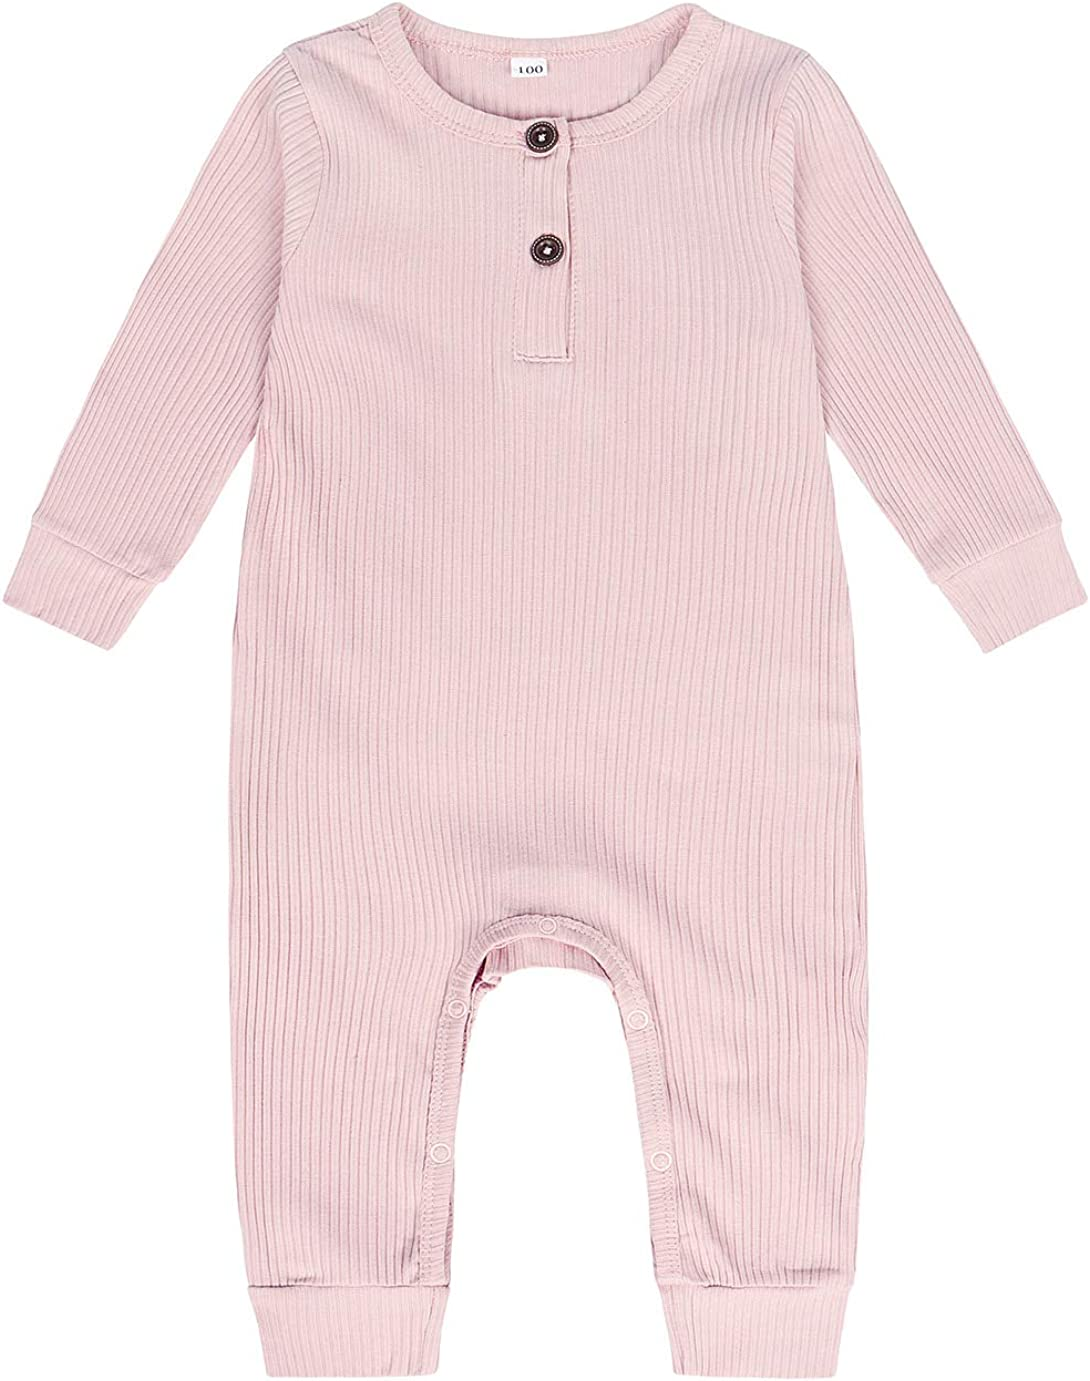 Jurebecia Rompers Cotton Boys Girls Jumpsuits Long Sleeve Sleepsuit Coveralls Cartoon Outfits Toddler Rompers Jumpsuits